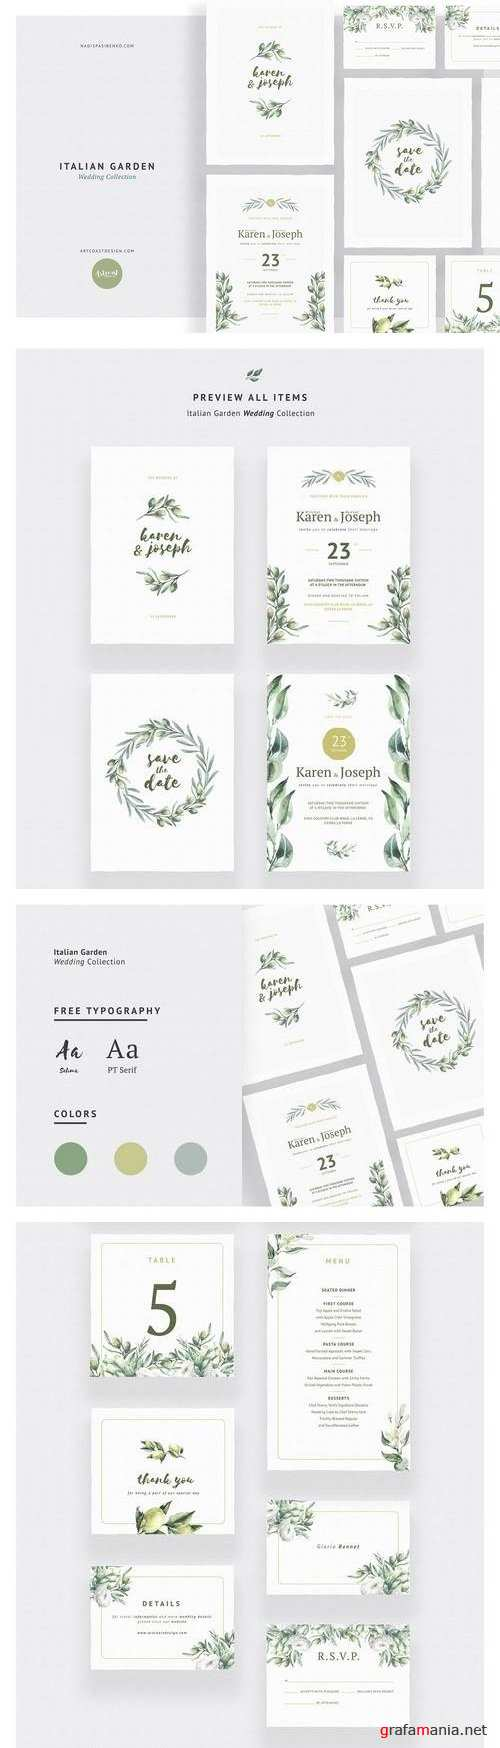 Italian Garden Wedding Collection - 2339226